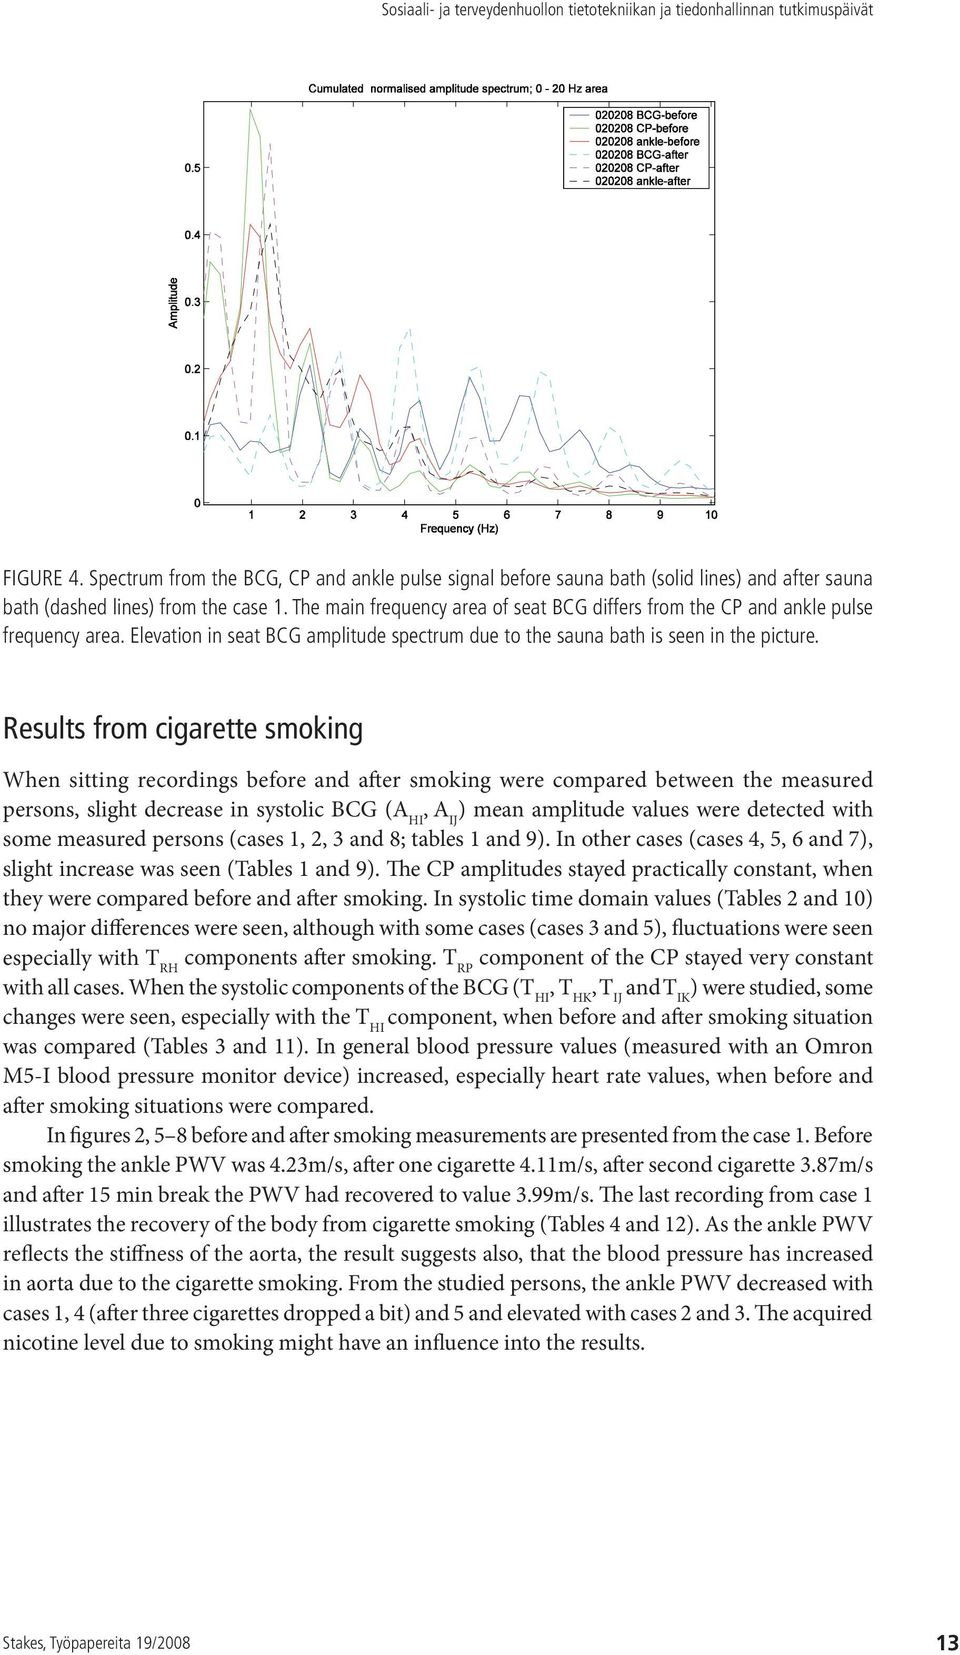 Results from cigarette smoking When sitting recordings before and after smoking were compared between the measured persons, slight decrease in systolic BCG (A HI, A ) mean amplitude values were